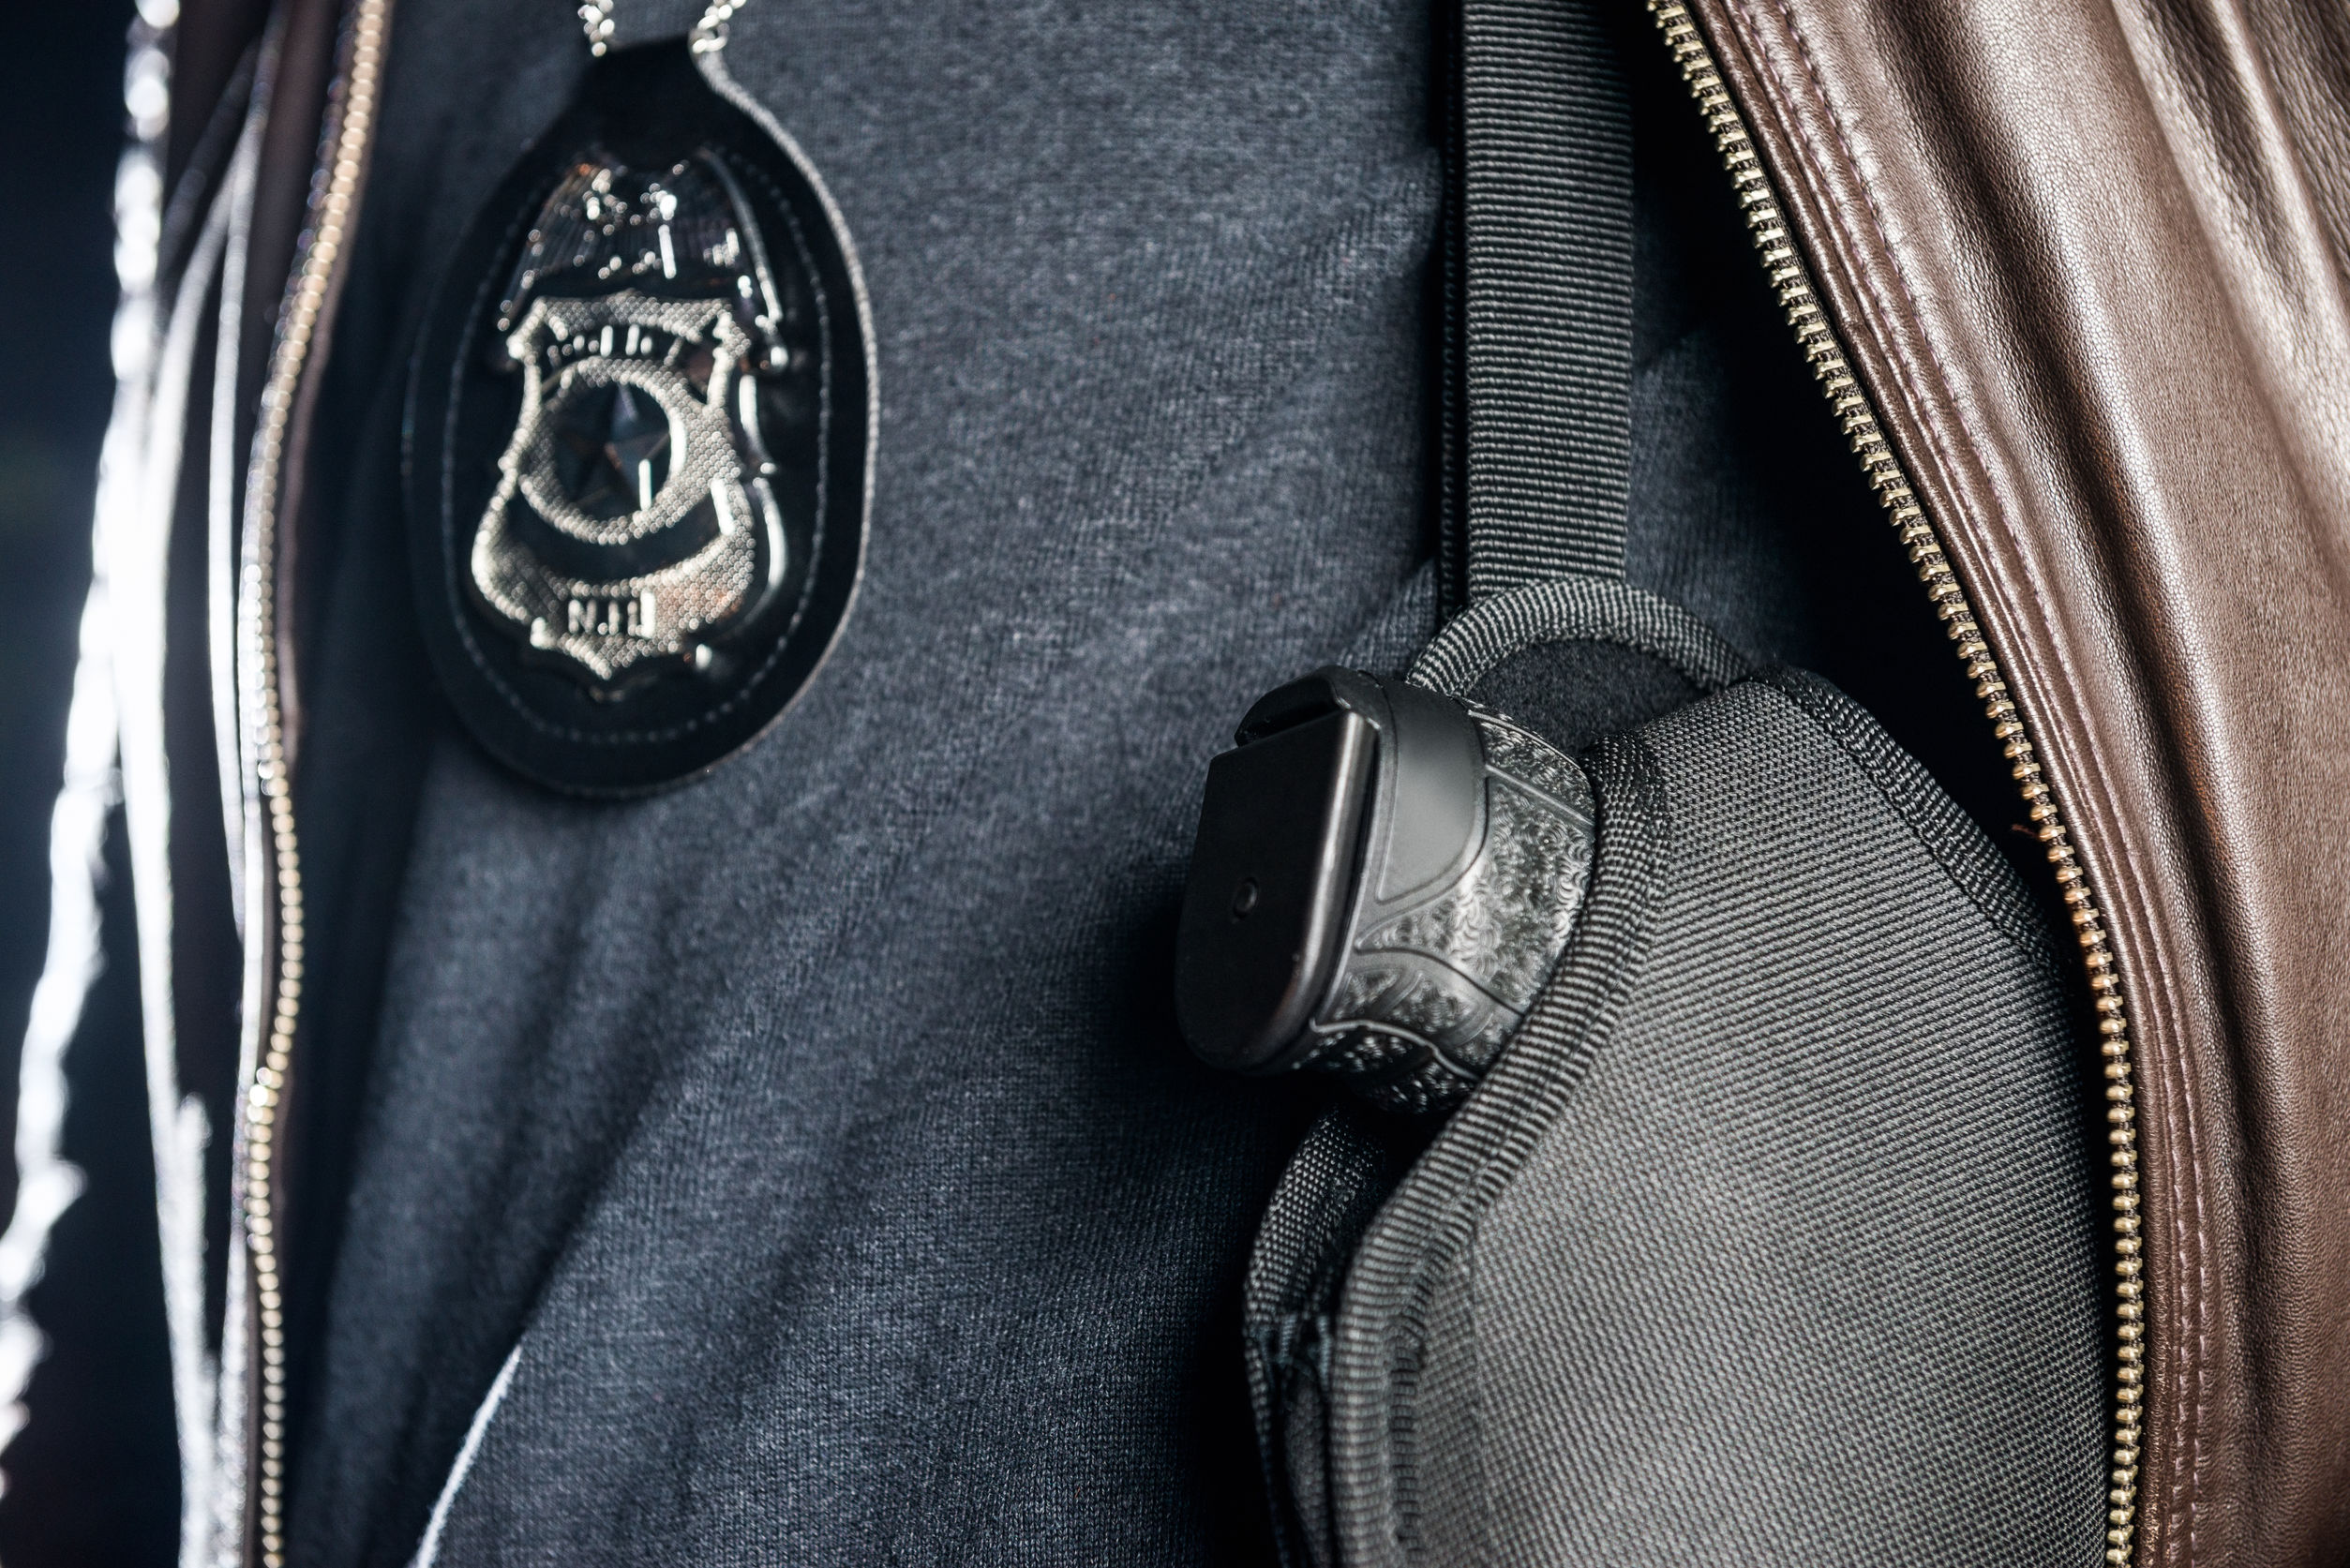 76594265 – closeup of police officer with badge and gun